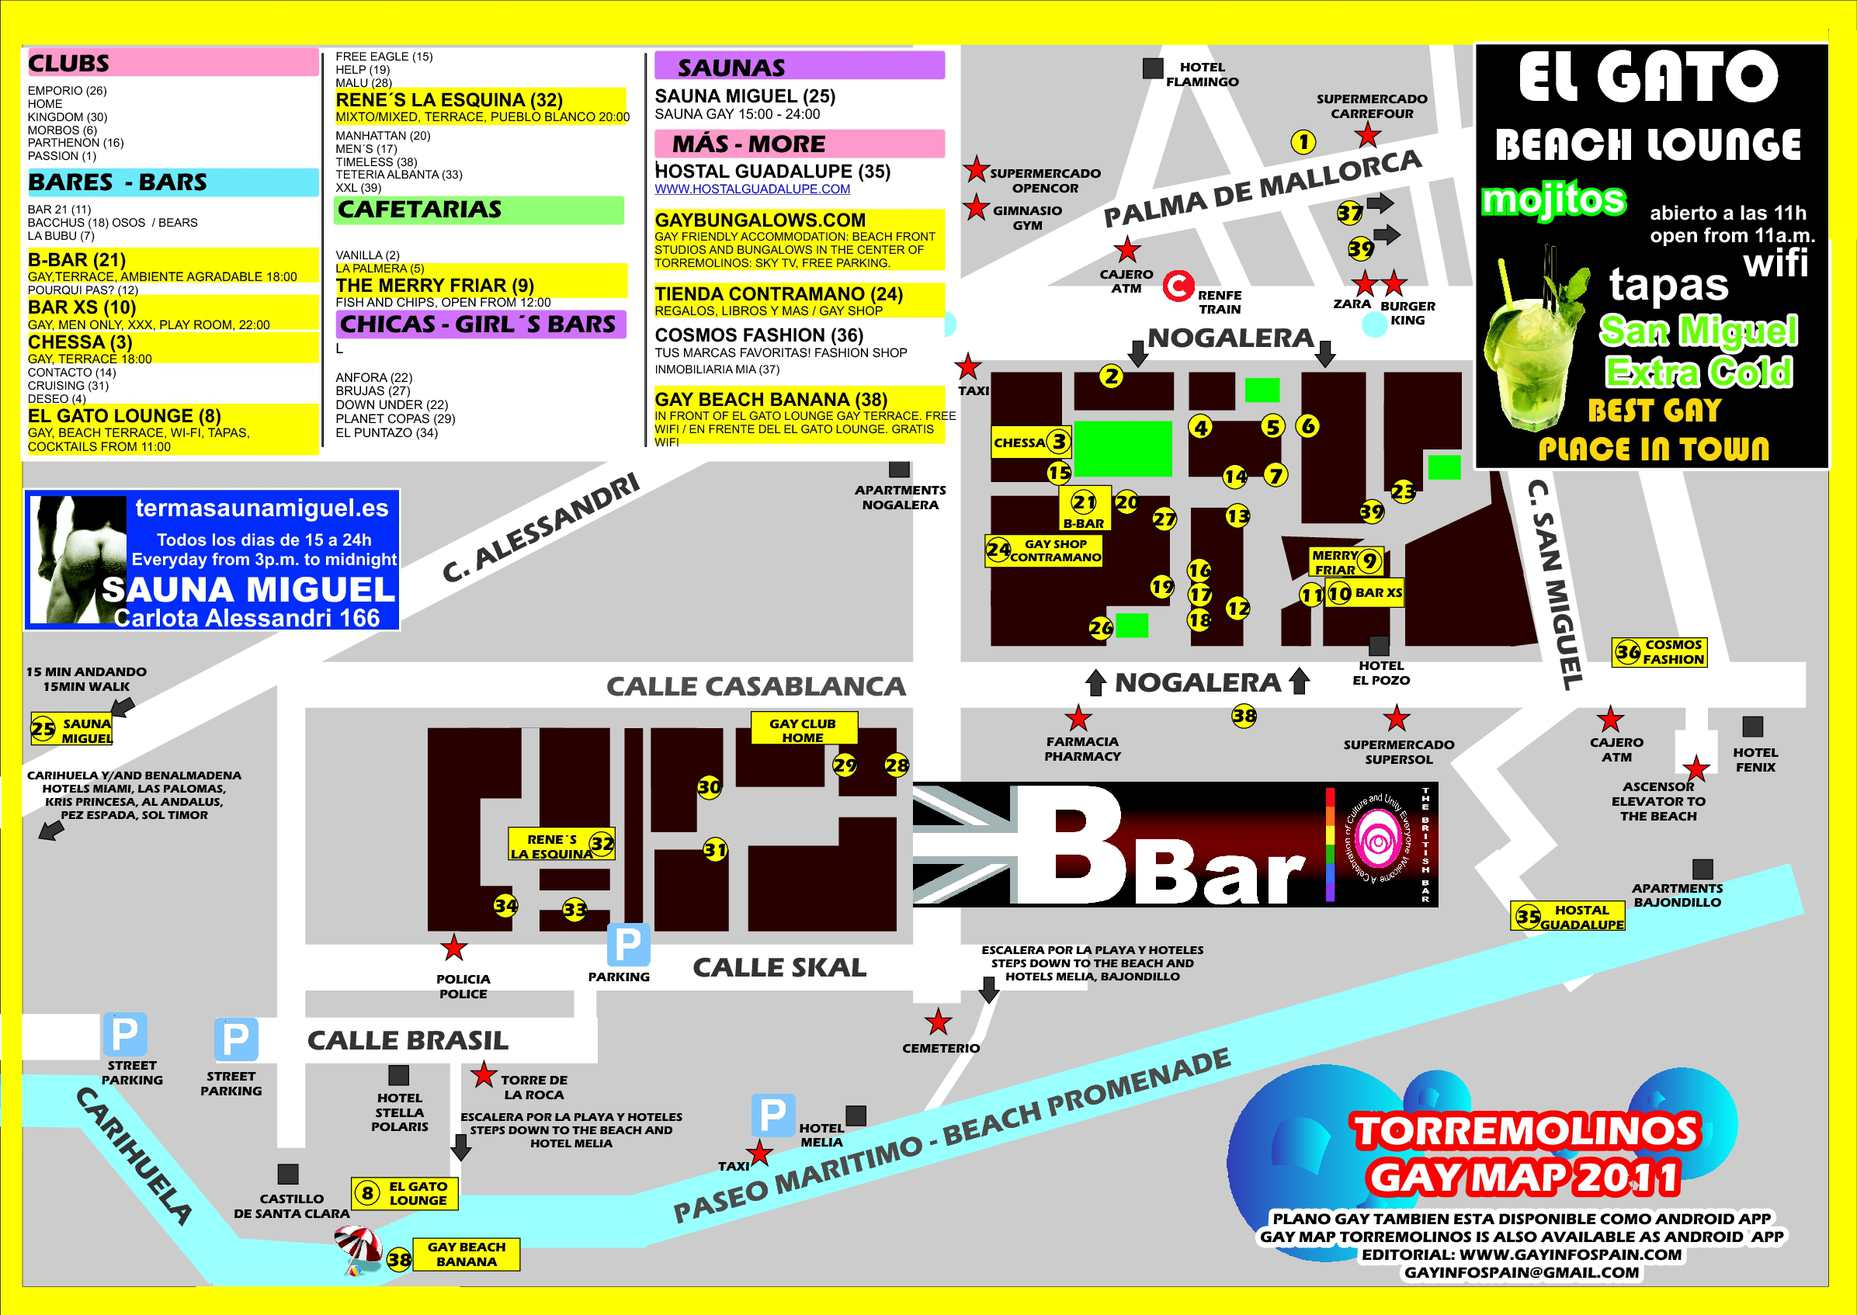 maps and photos of Over 50 crowd Gay Bars